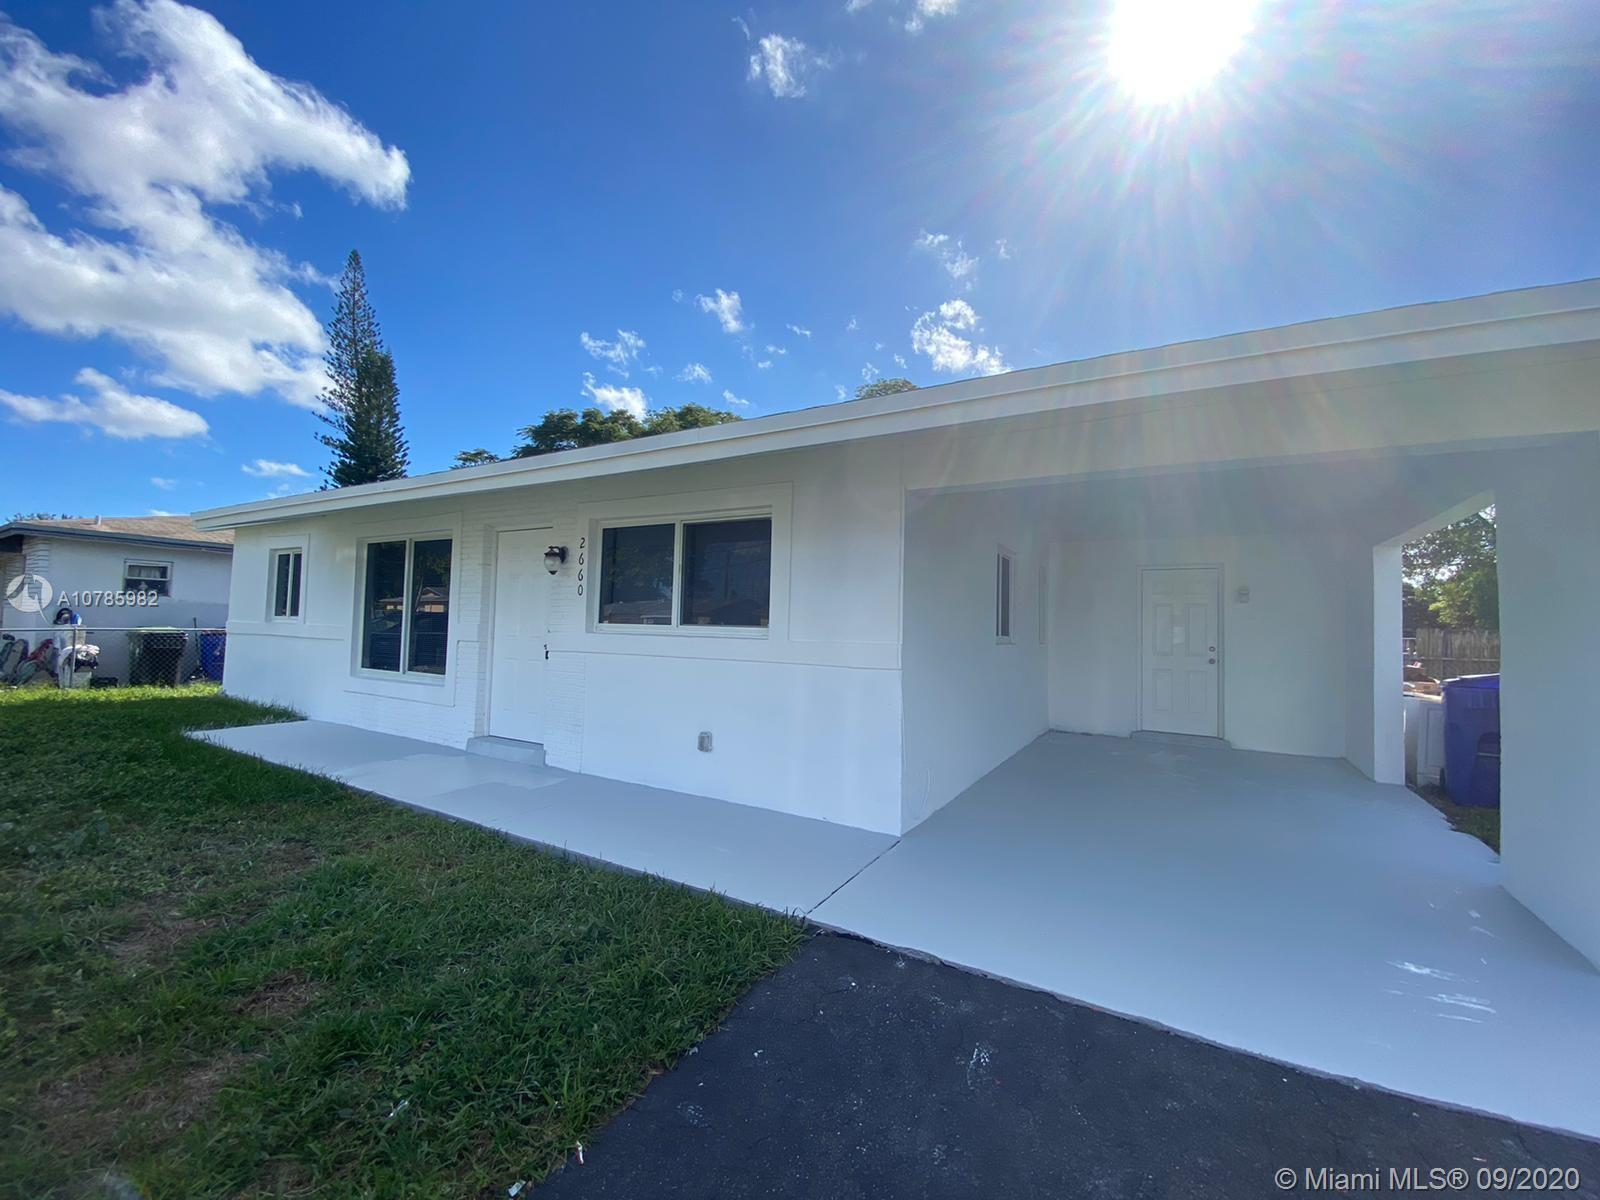 SPACIOUS 4 BEDS / 2 BATHS PERFECT FOR FIRST TIME BUYER SWITH PLENTY OF SPACE FOR A POOL. PROPERTY I